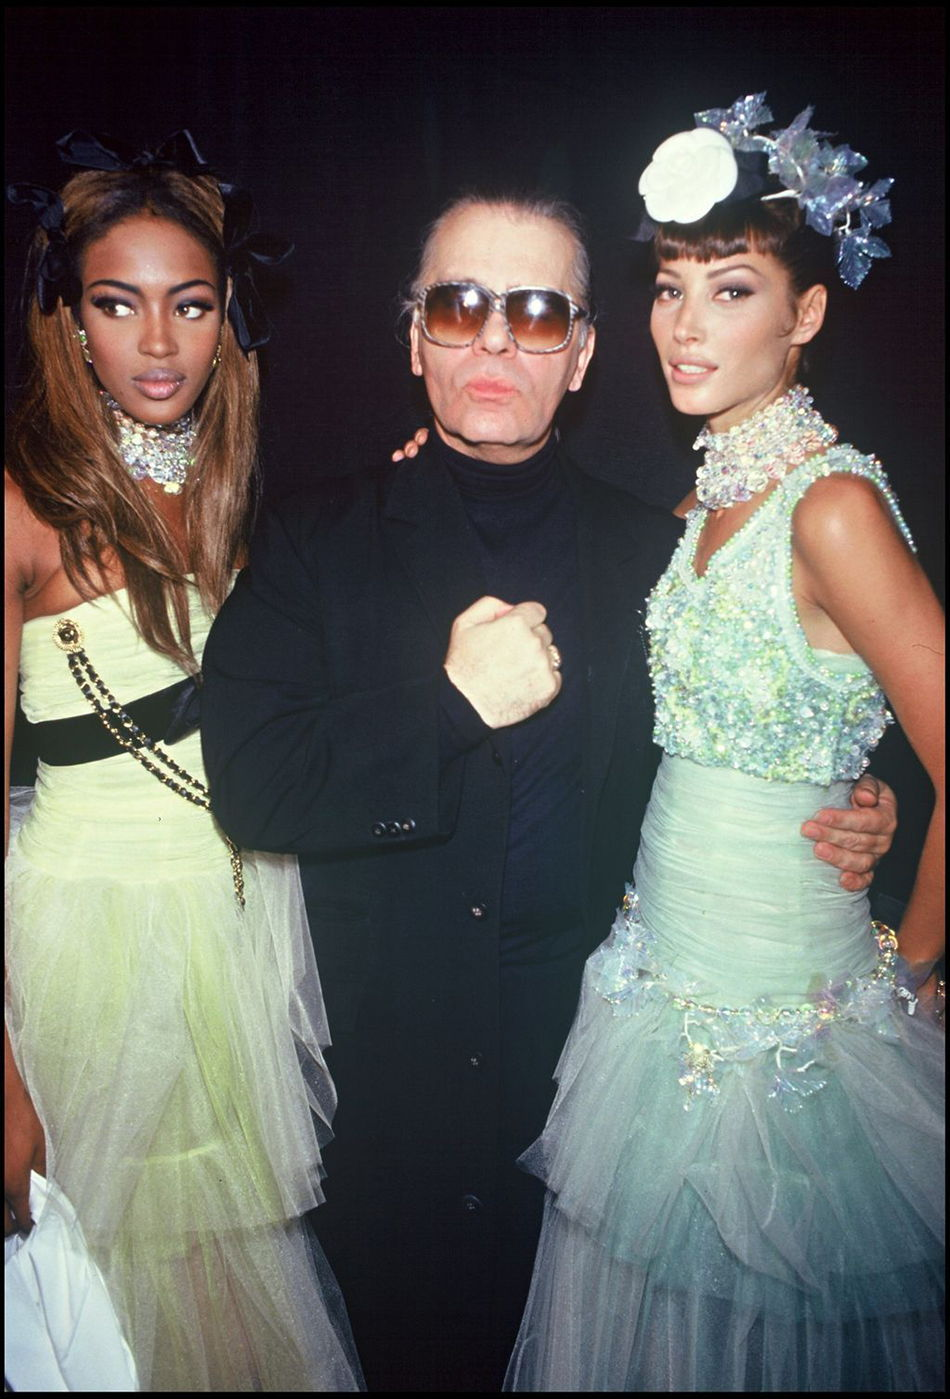 Karl Lagerfeld con Naomi Campbell e Cristy Turlington nel backstage di Chanel - 1992